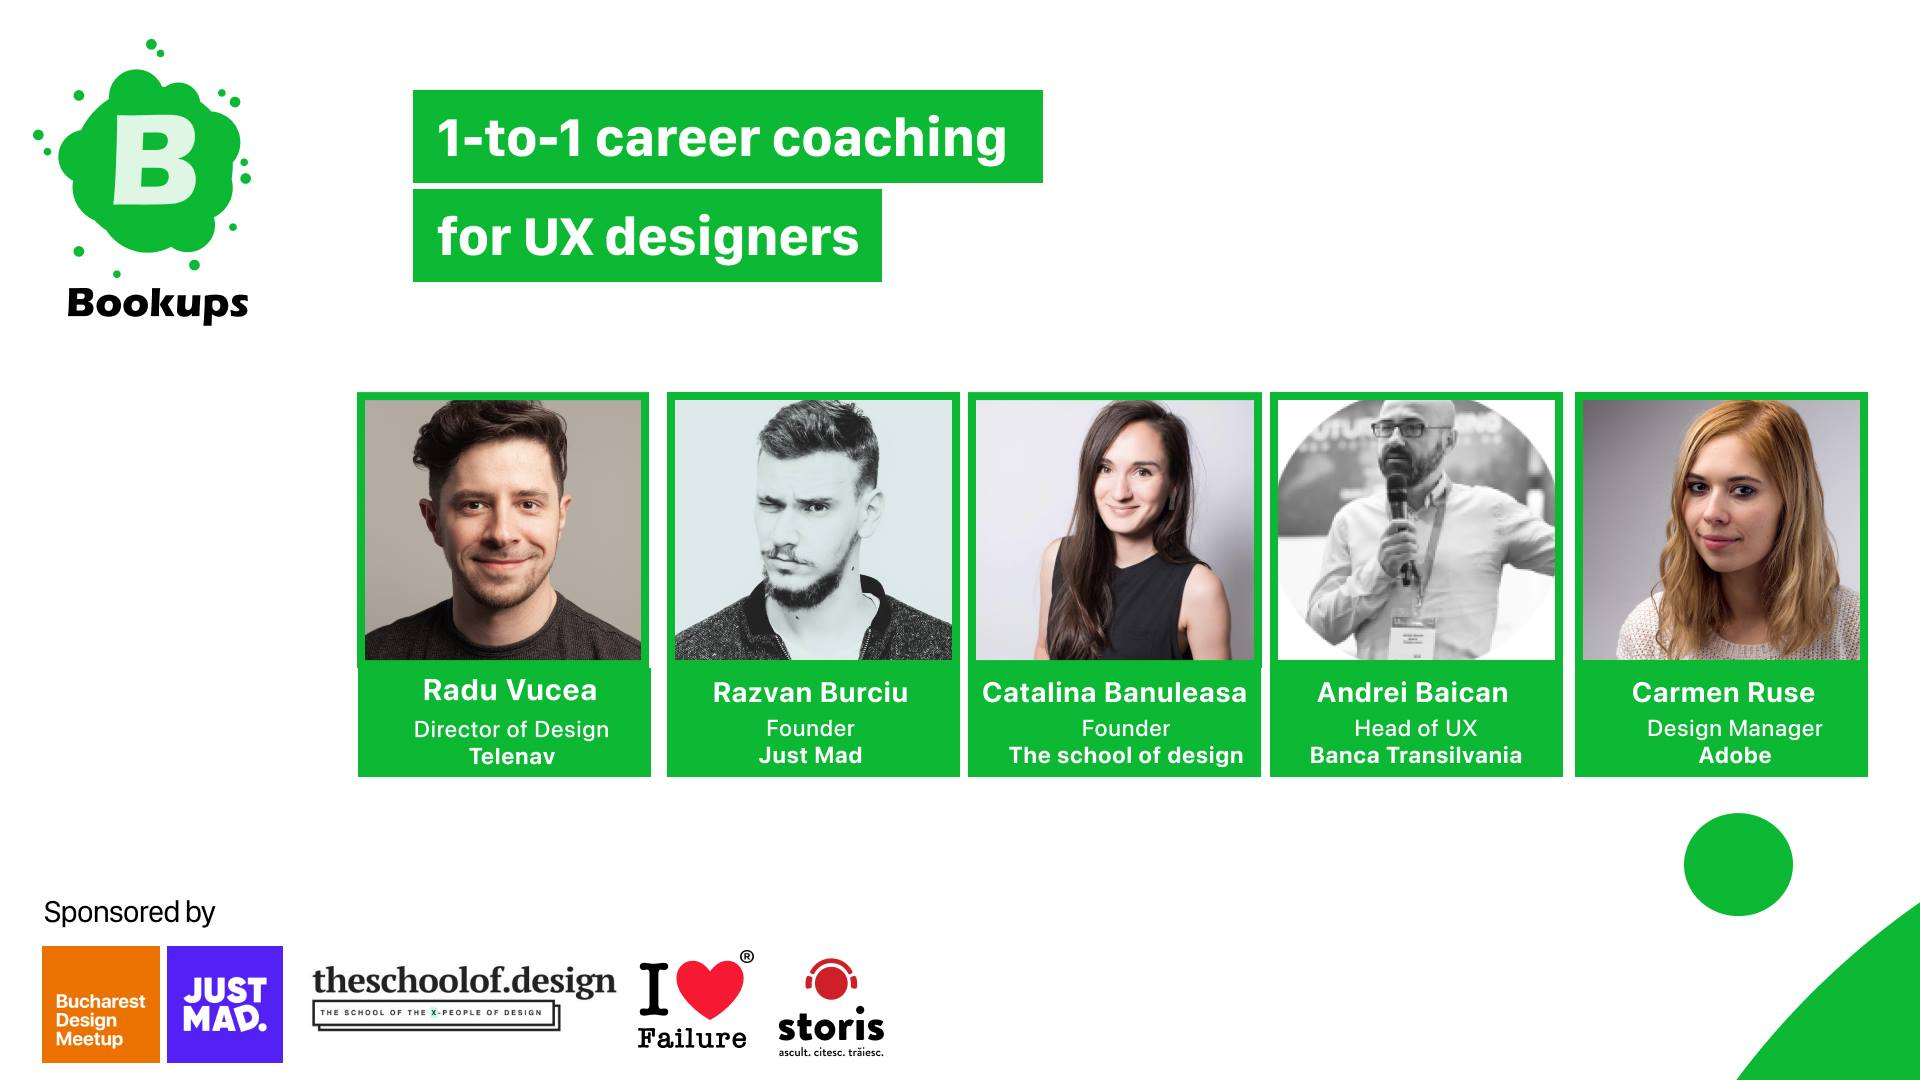 1-to-1 career coaching for UX designers